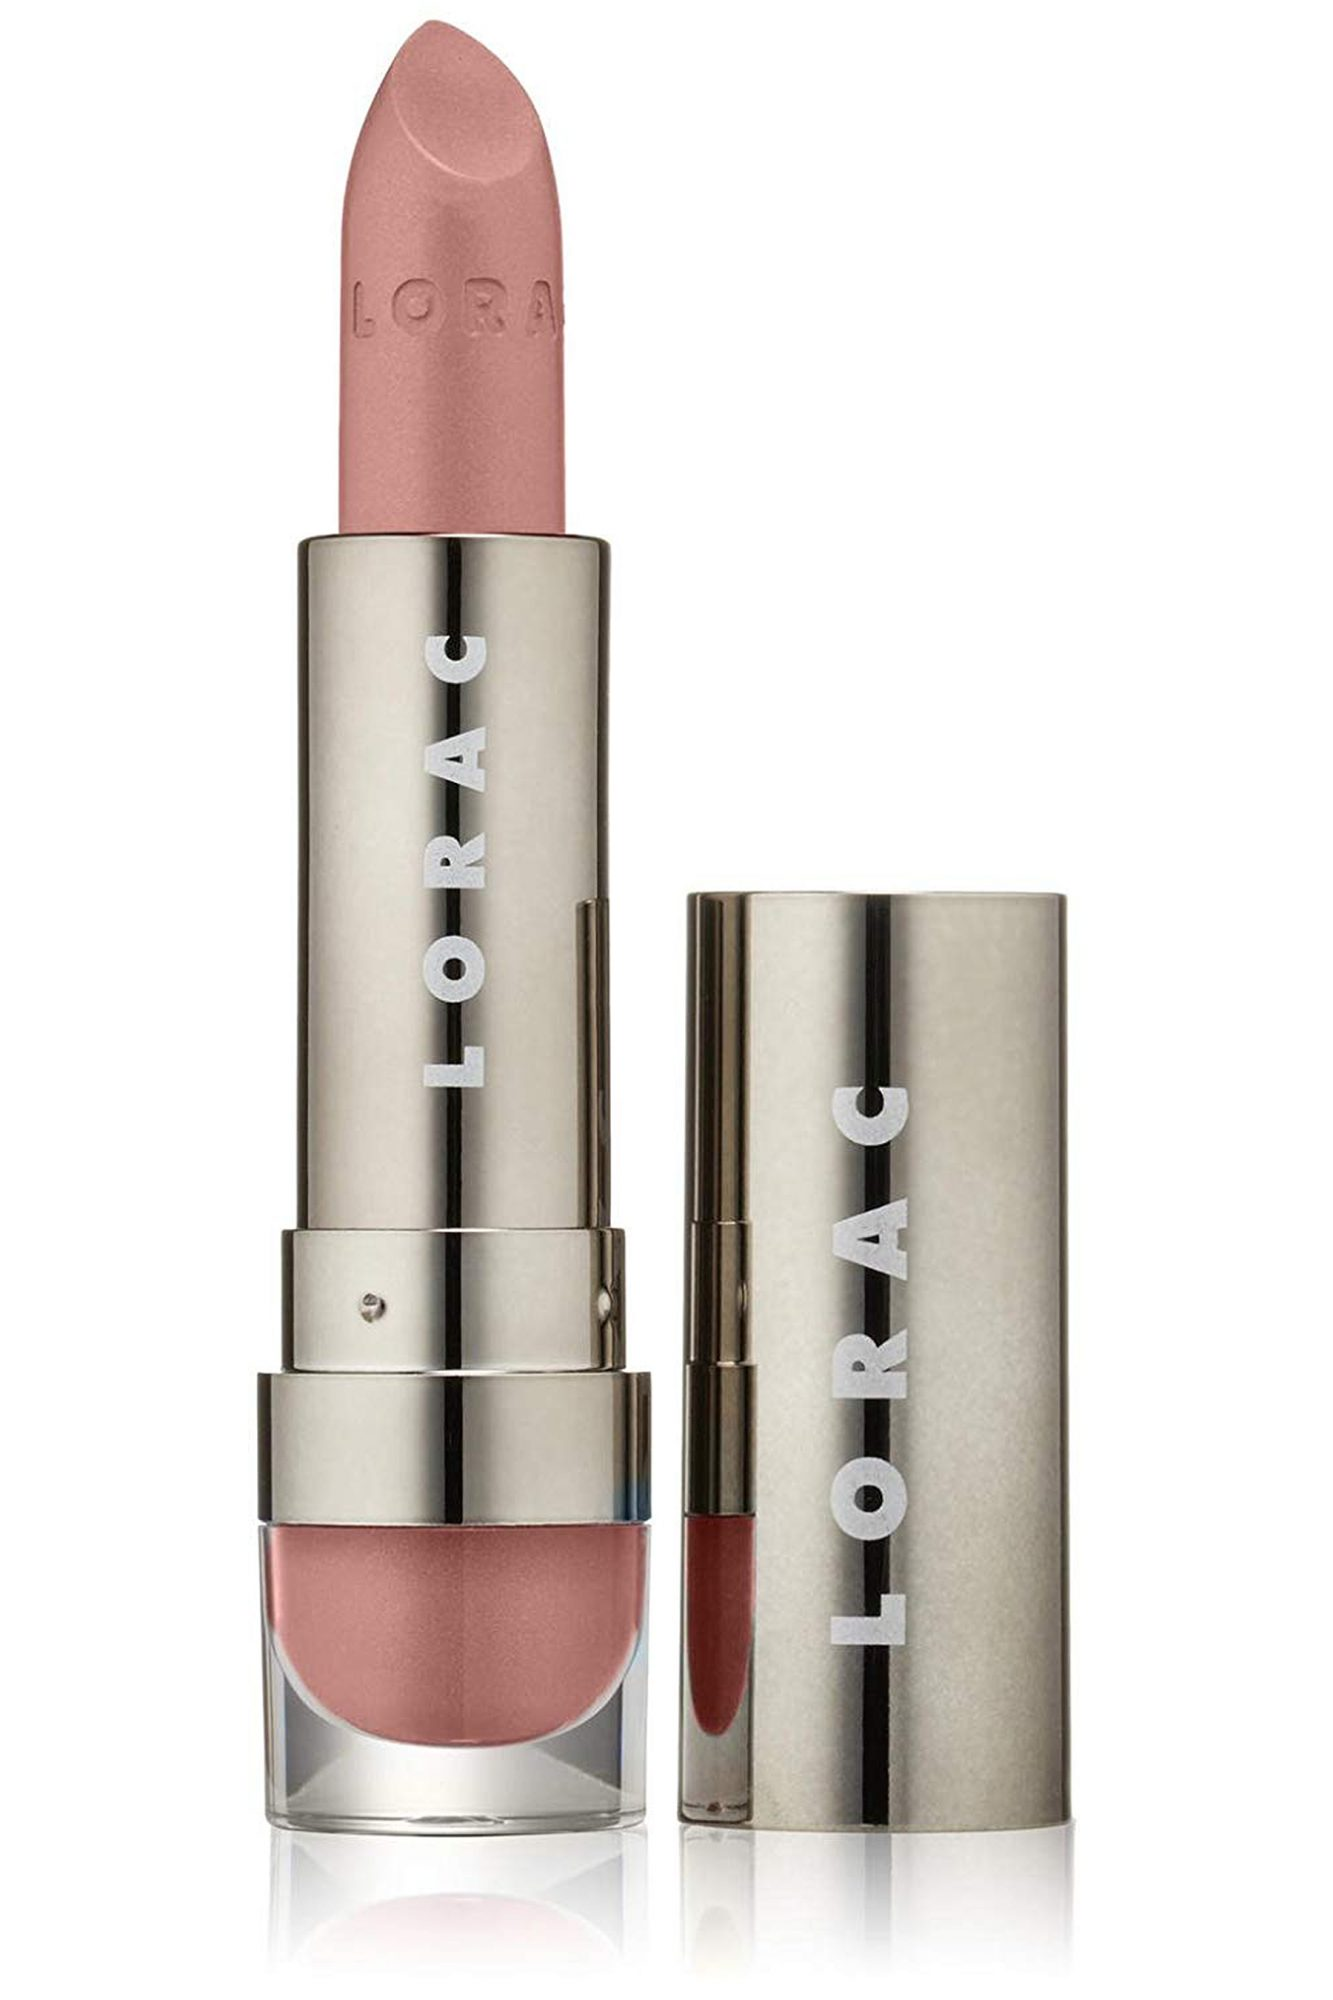 mandy moore emmys makeup lorac lipstick in nude pink